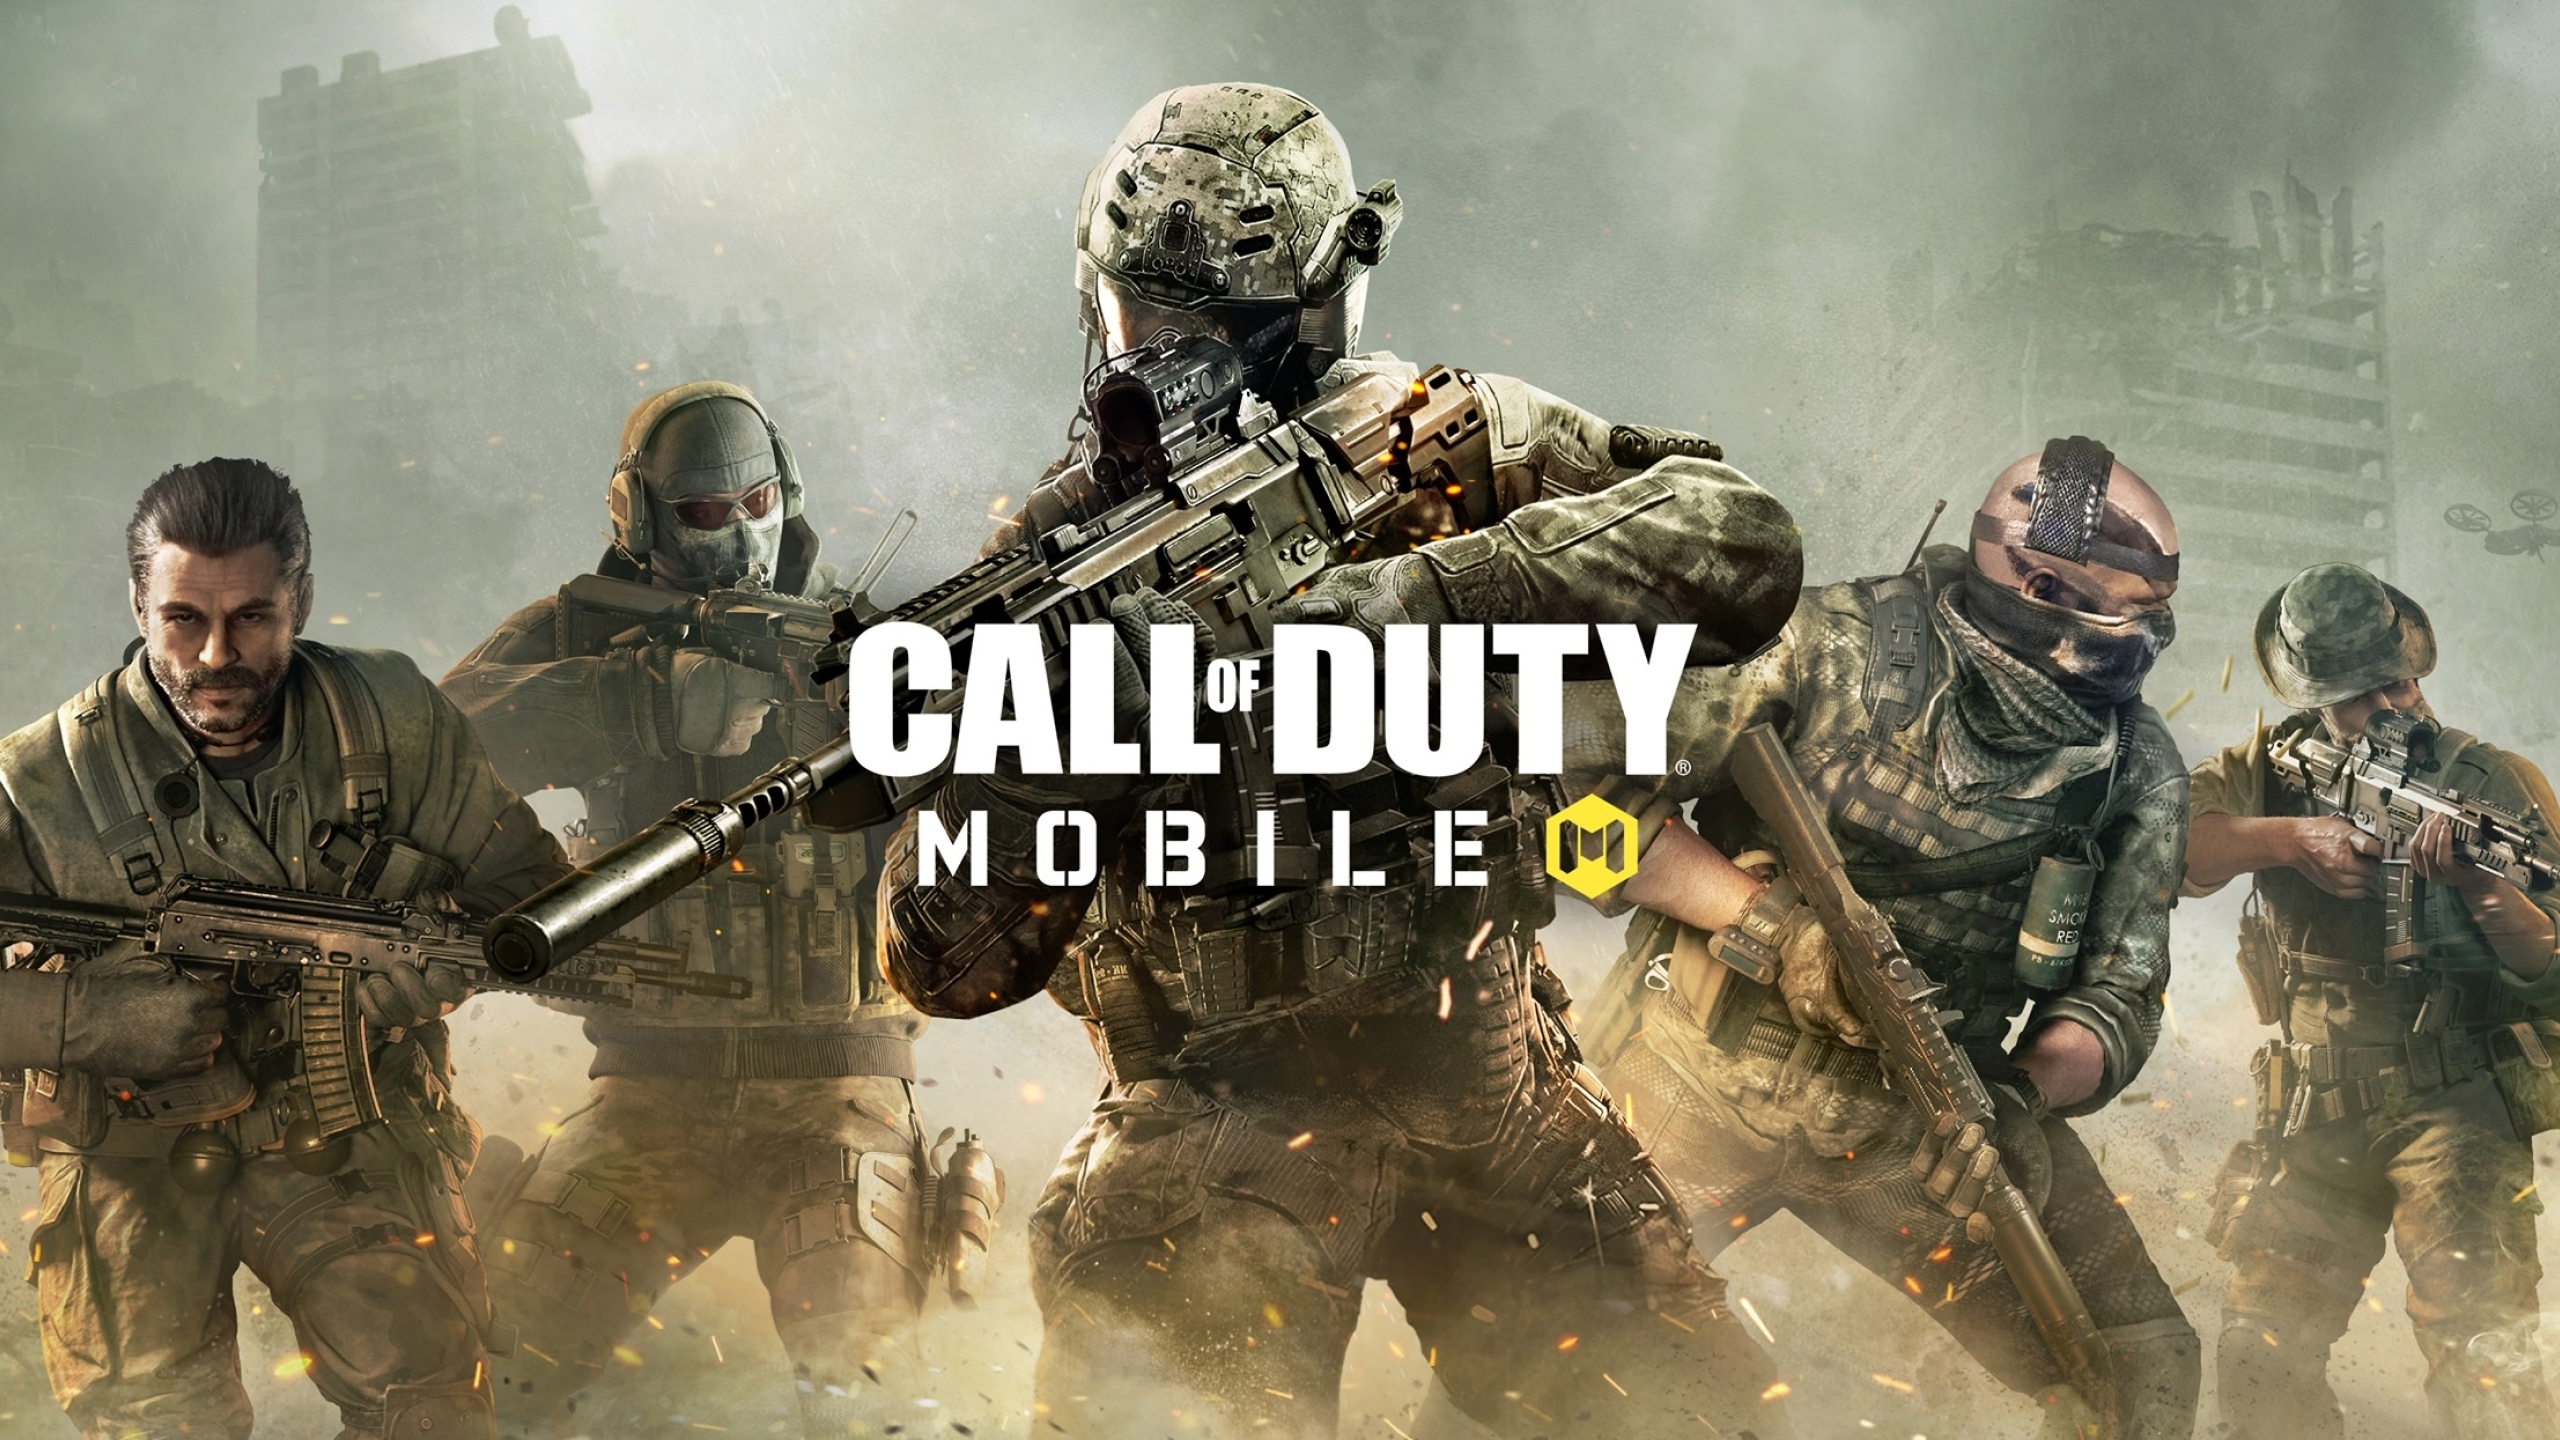 2560x1440 Call Of Duty Mobile Game 1440p Resolution Wallpaper Hd